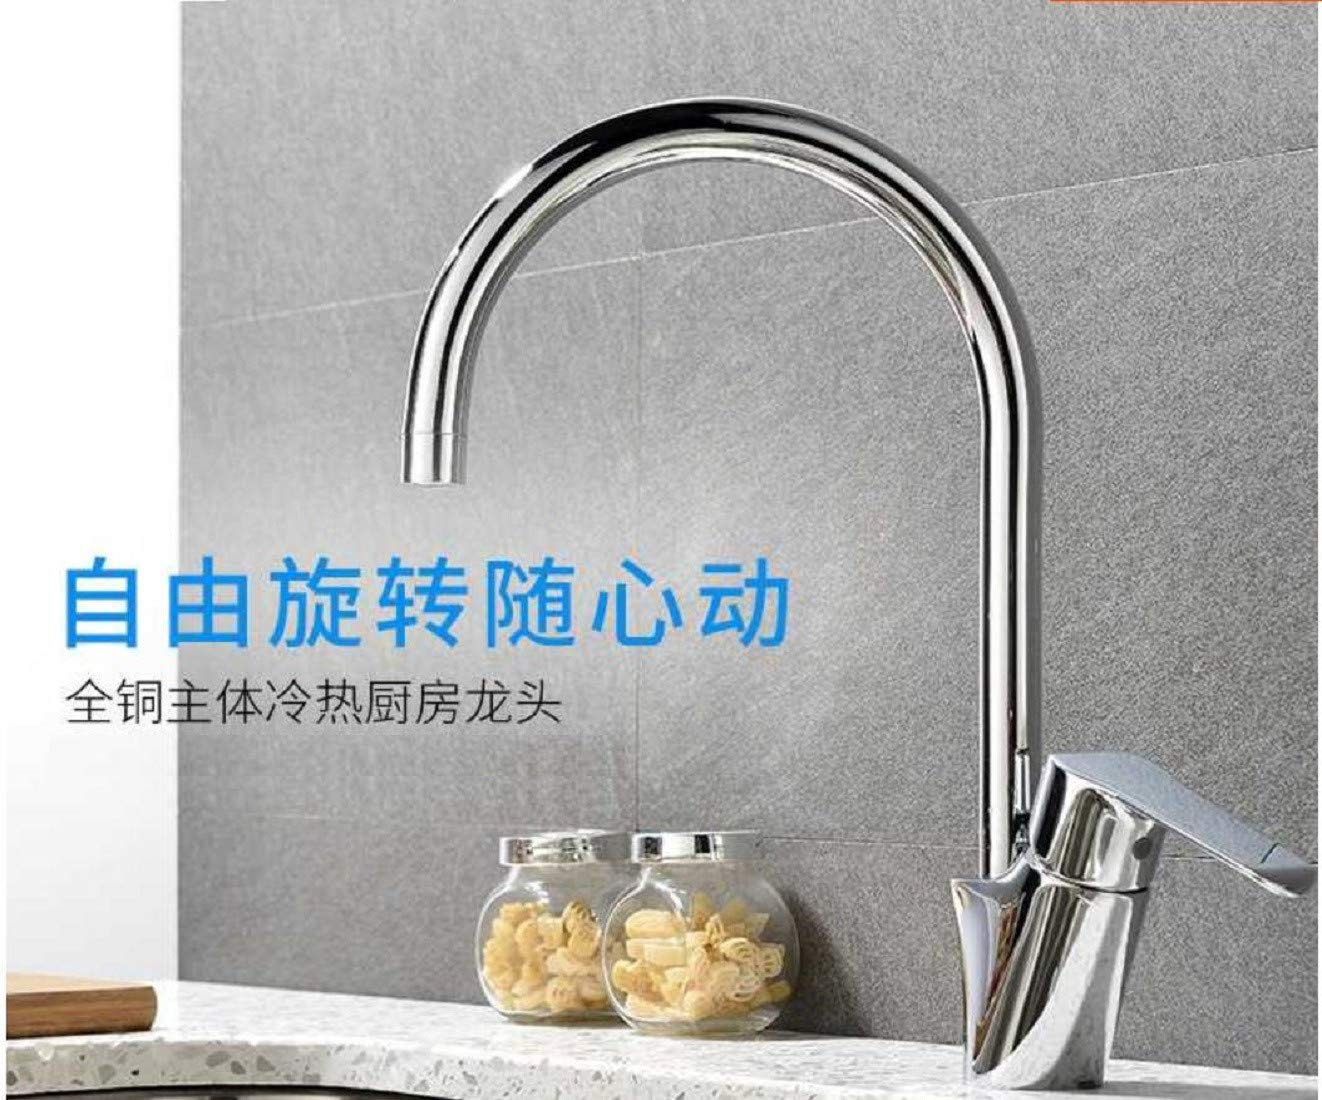 Kitchen Faucet Cool And Hot Rotation Of Single Hole In Faucet Kitchen Kitchen Sink Faucets Basin Mixer Faucet